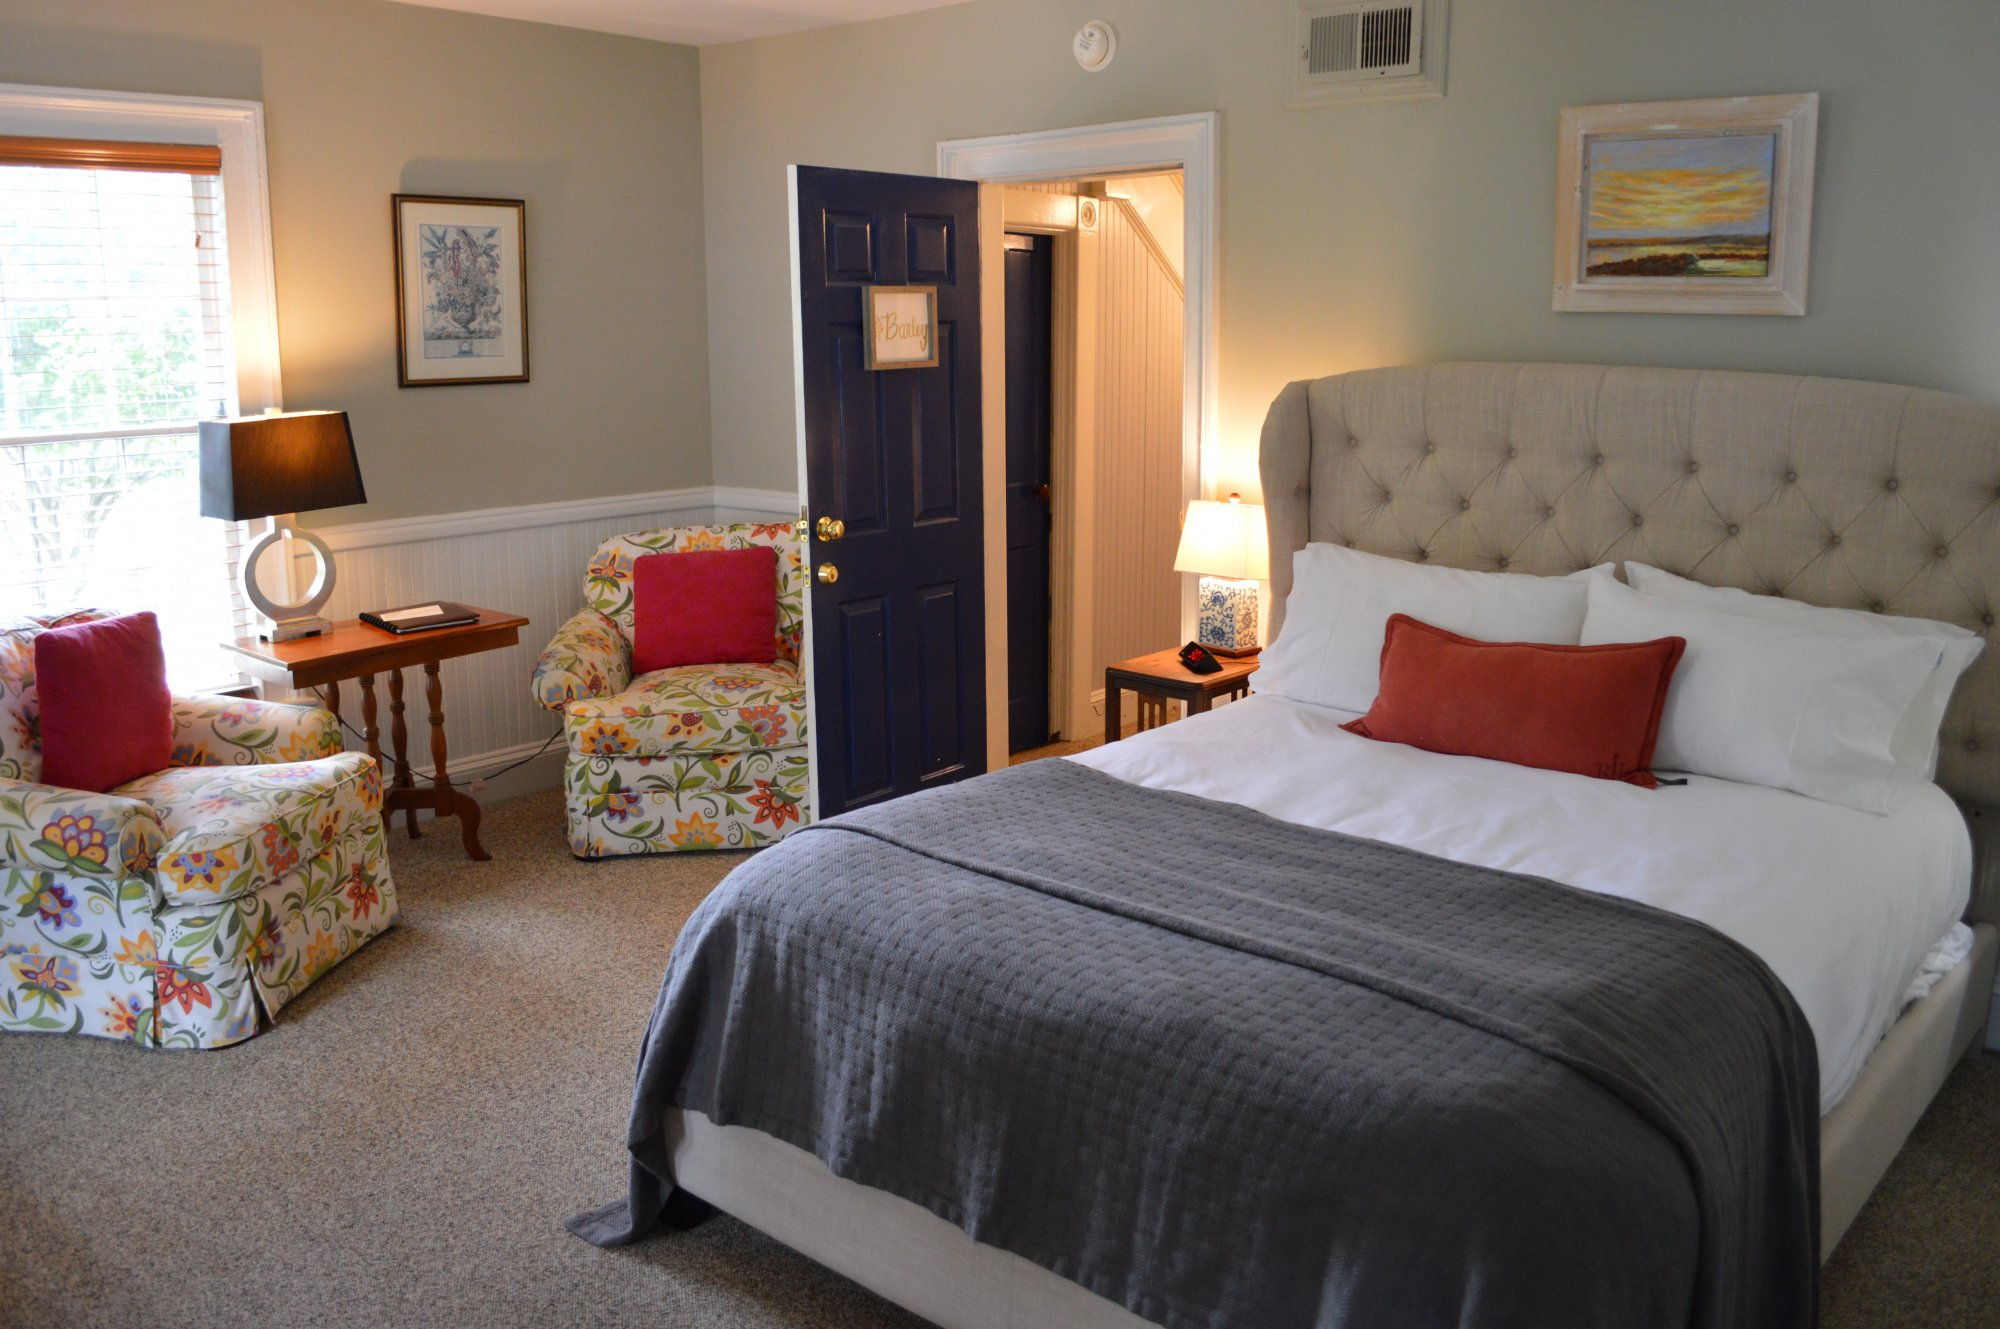 Barley Room at the Inn at Gristmill Square in Warm Springs, Virginia